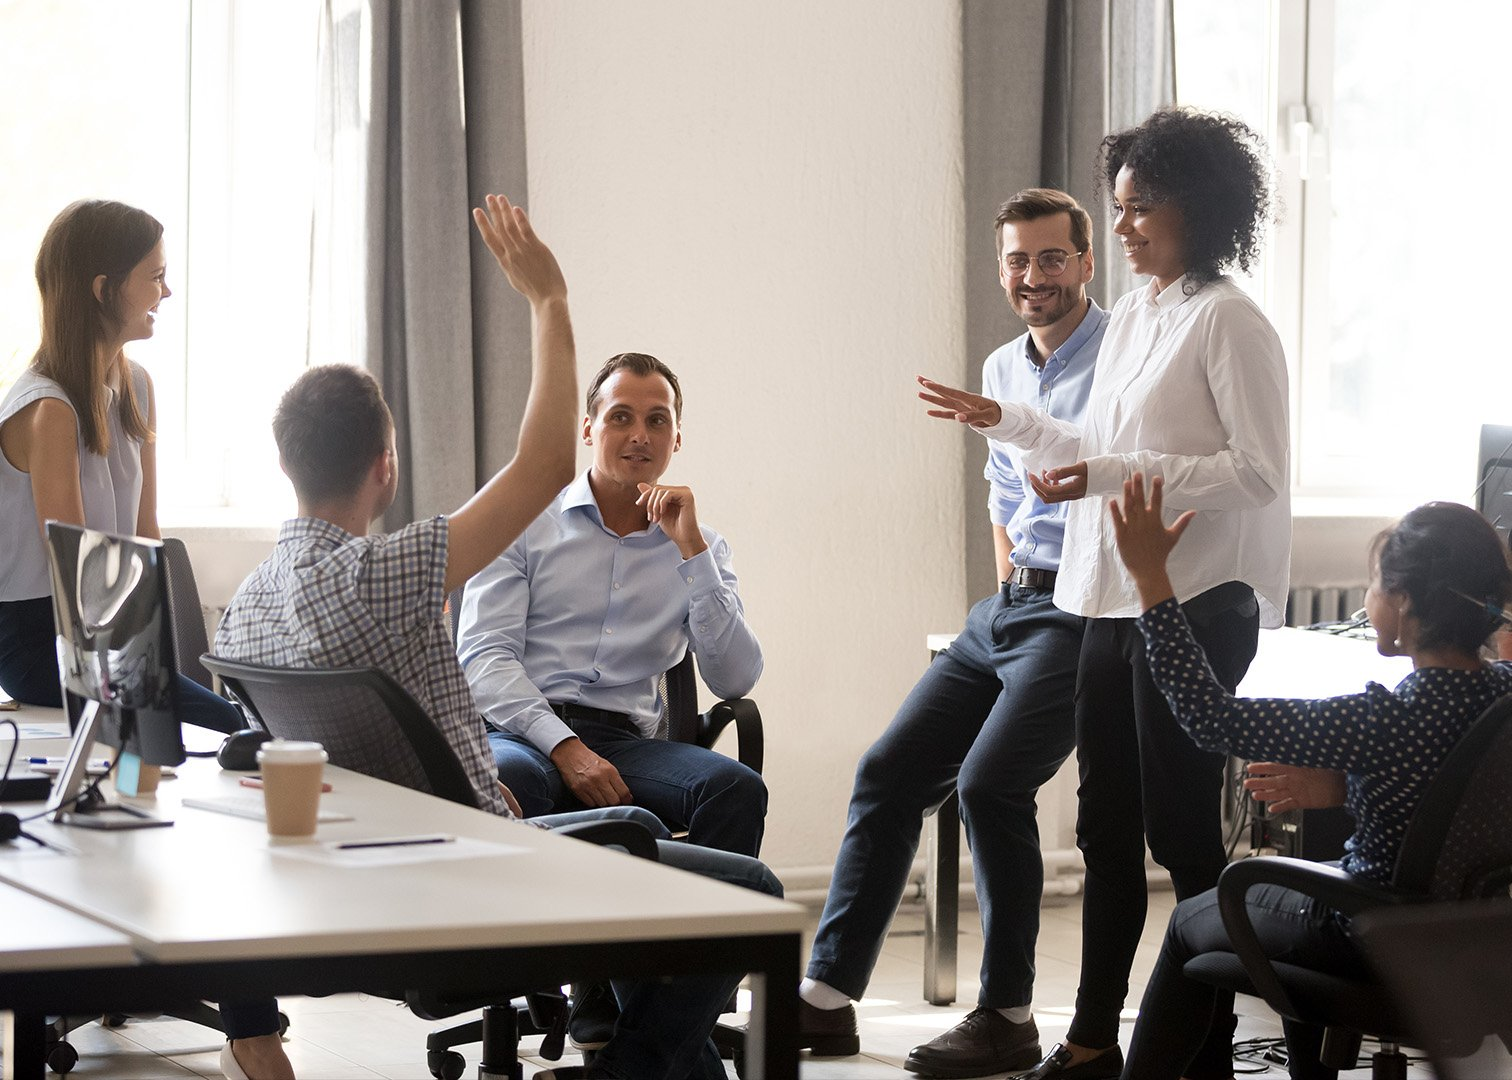 Change management - facilitating employee support with change initiatives